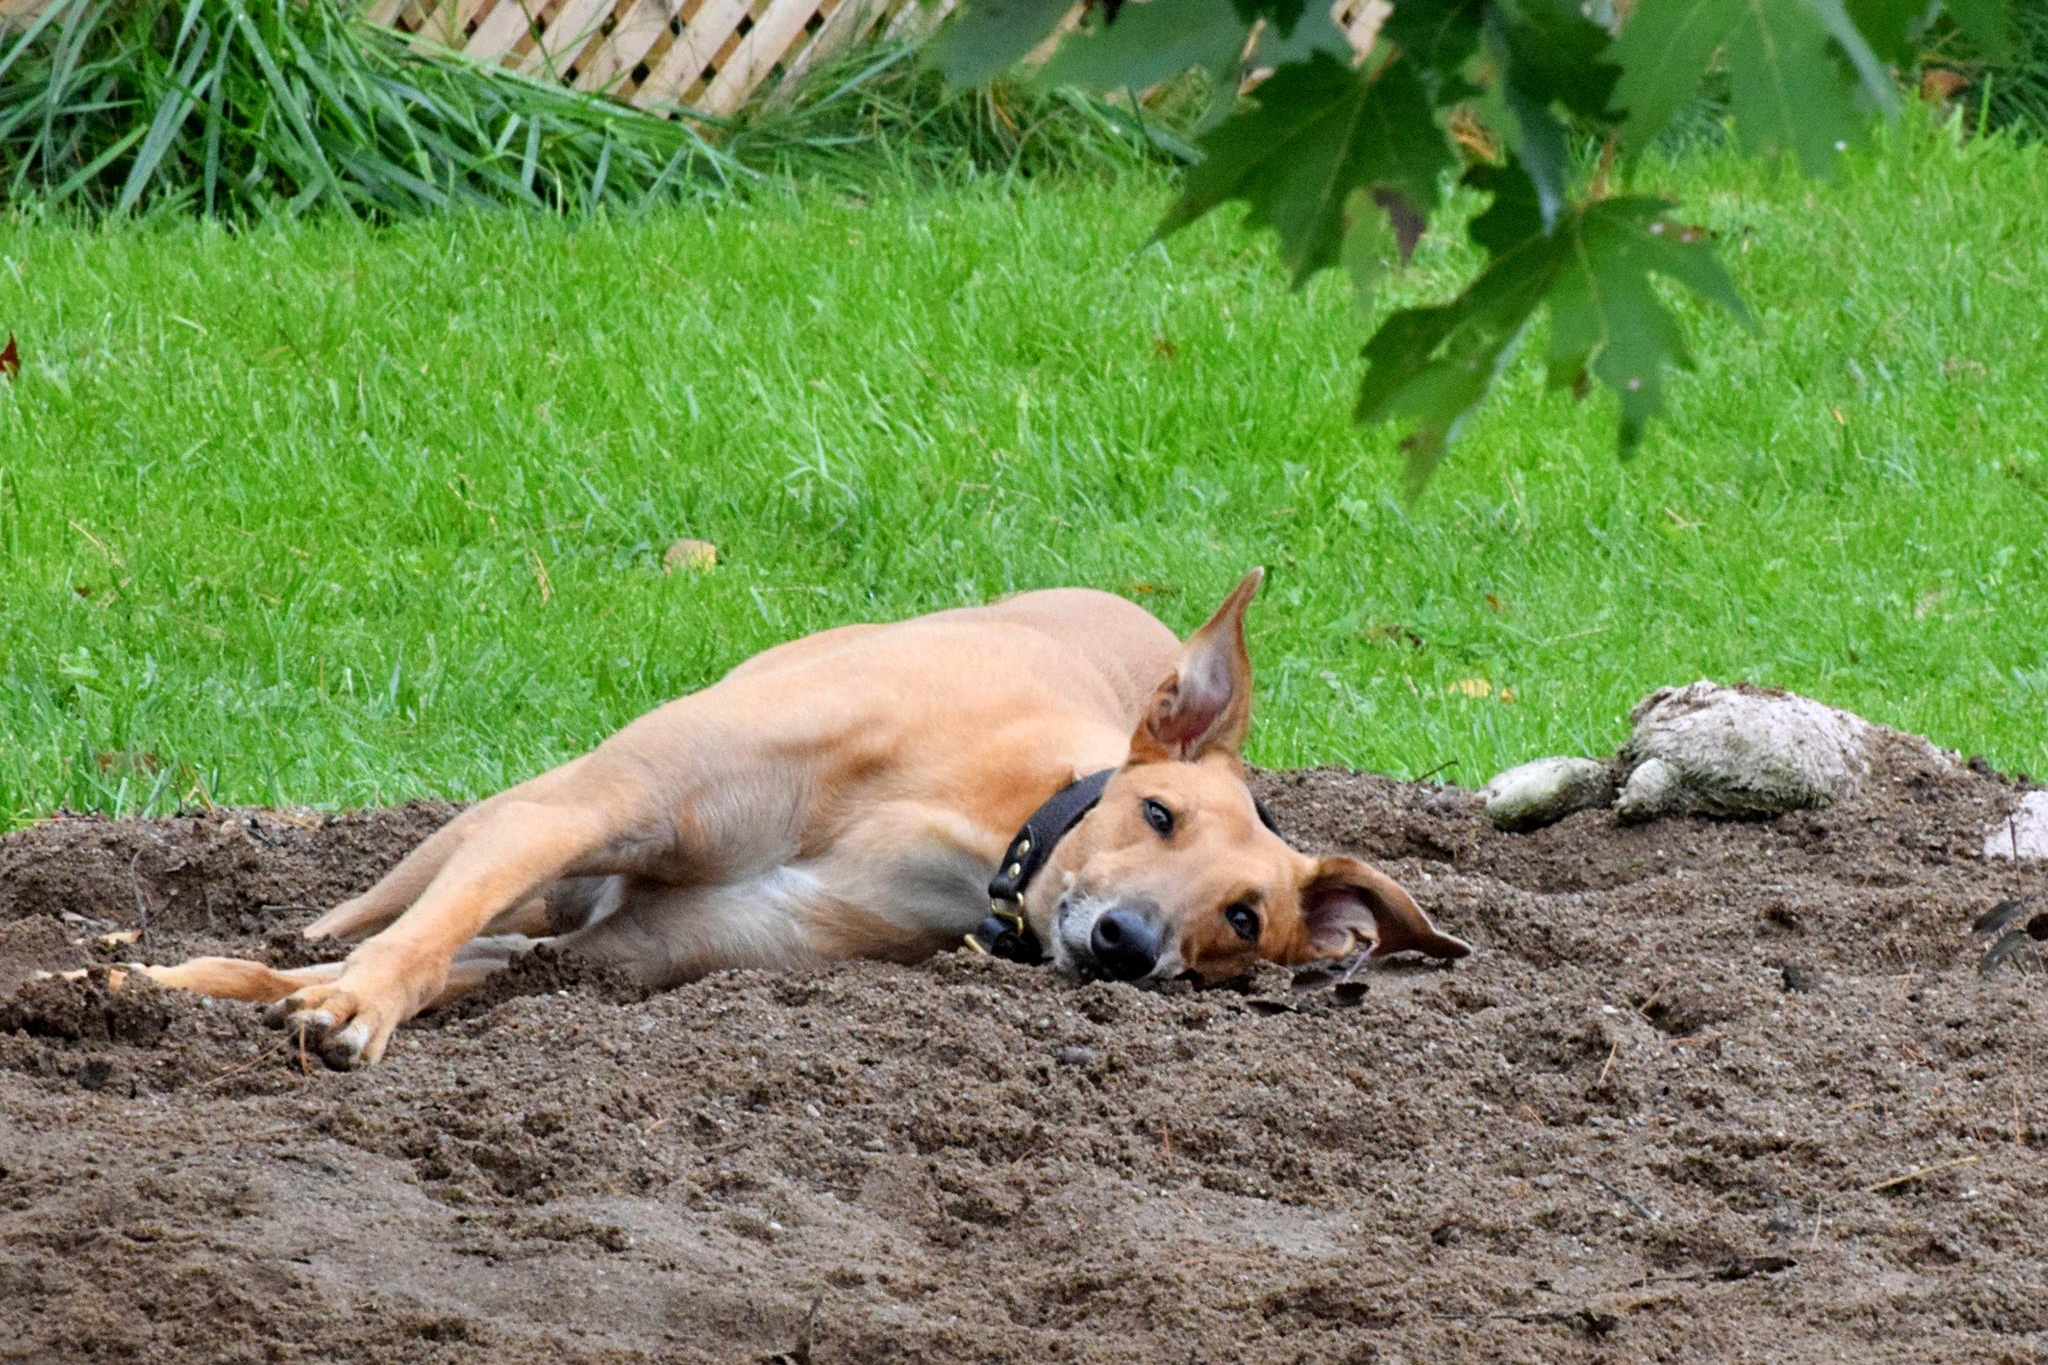 - Sand pile for all your hounds' digging needs.